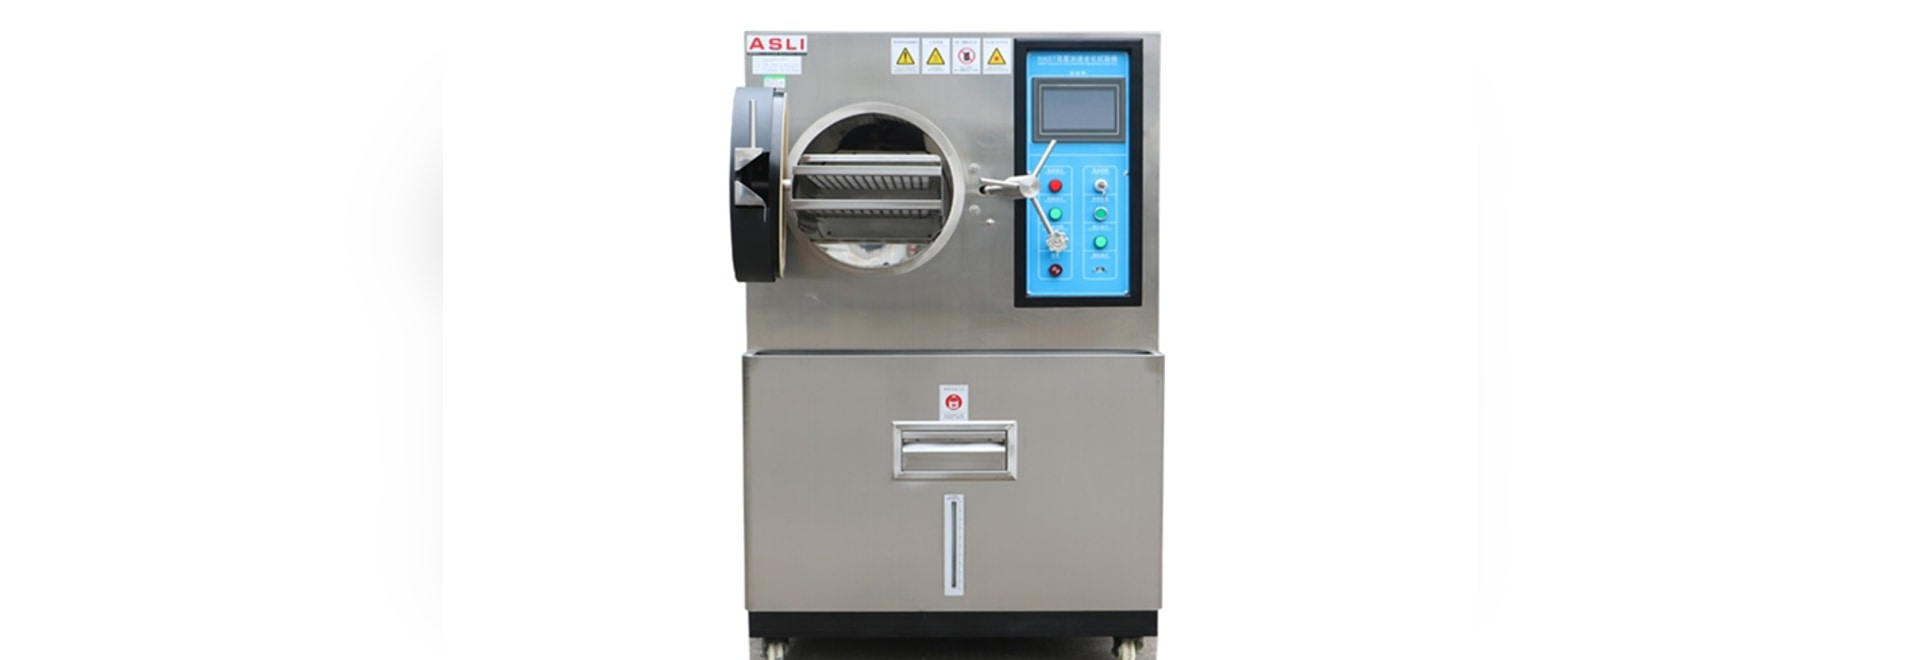 HAST-25 Pressure Accelerated Aging Test Chamber